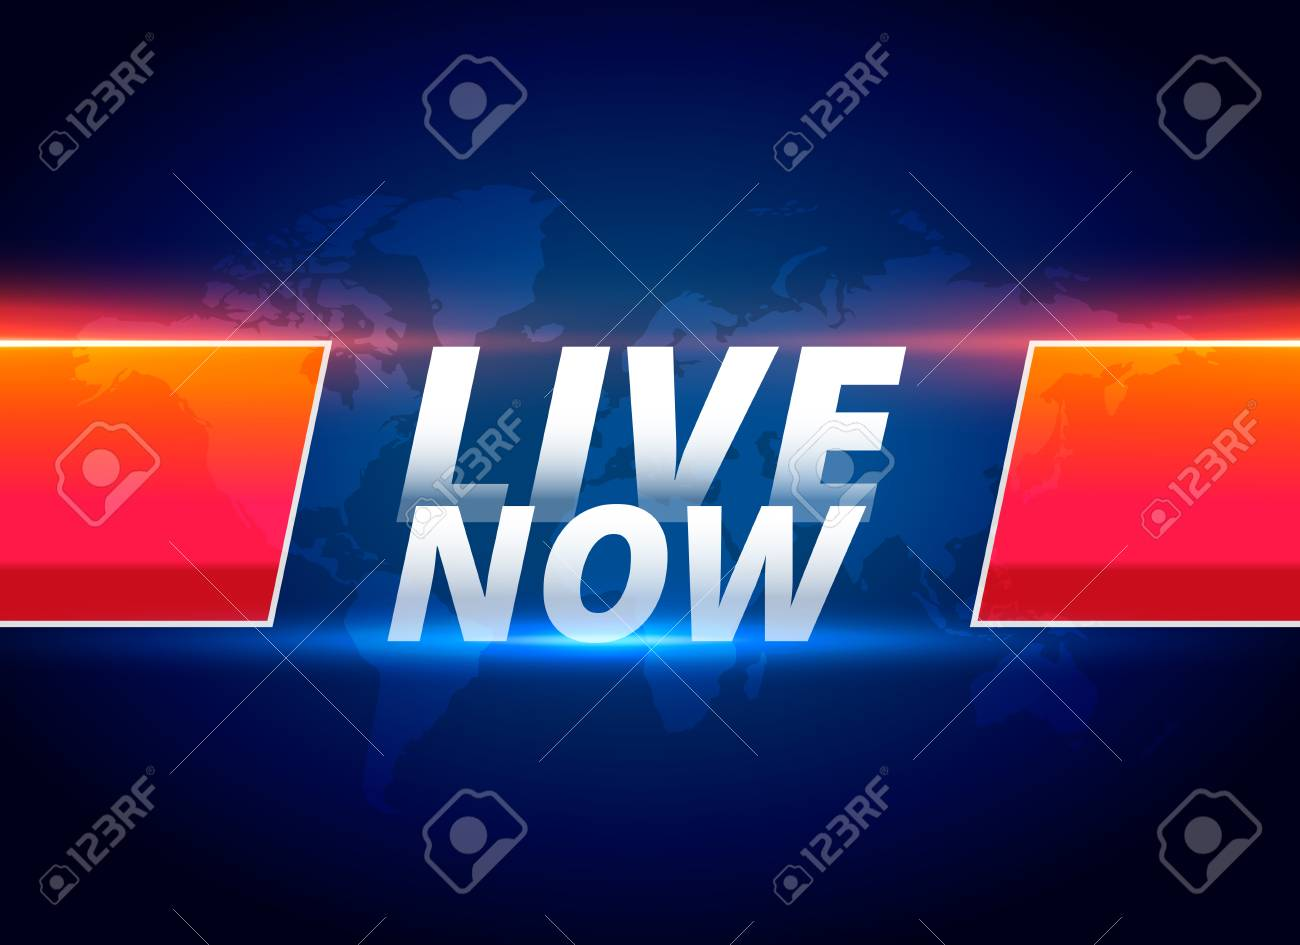 live now streaming news background - 103236127